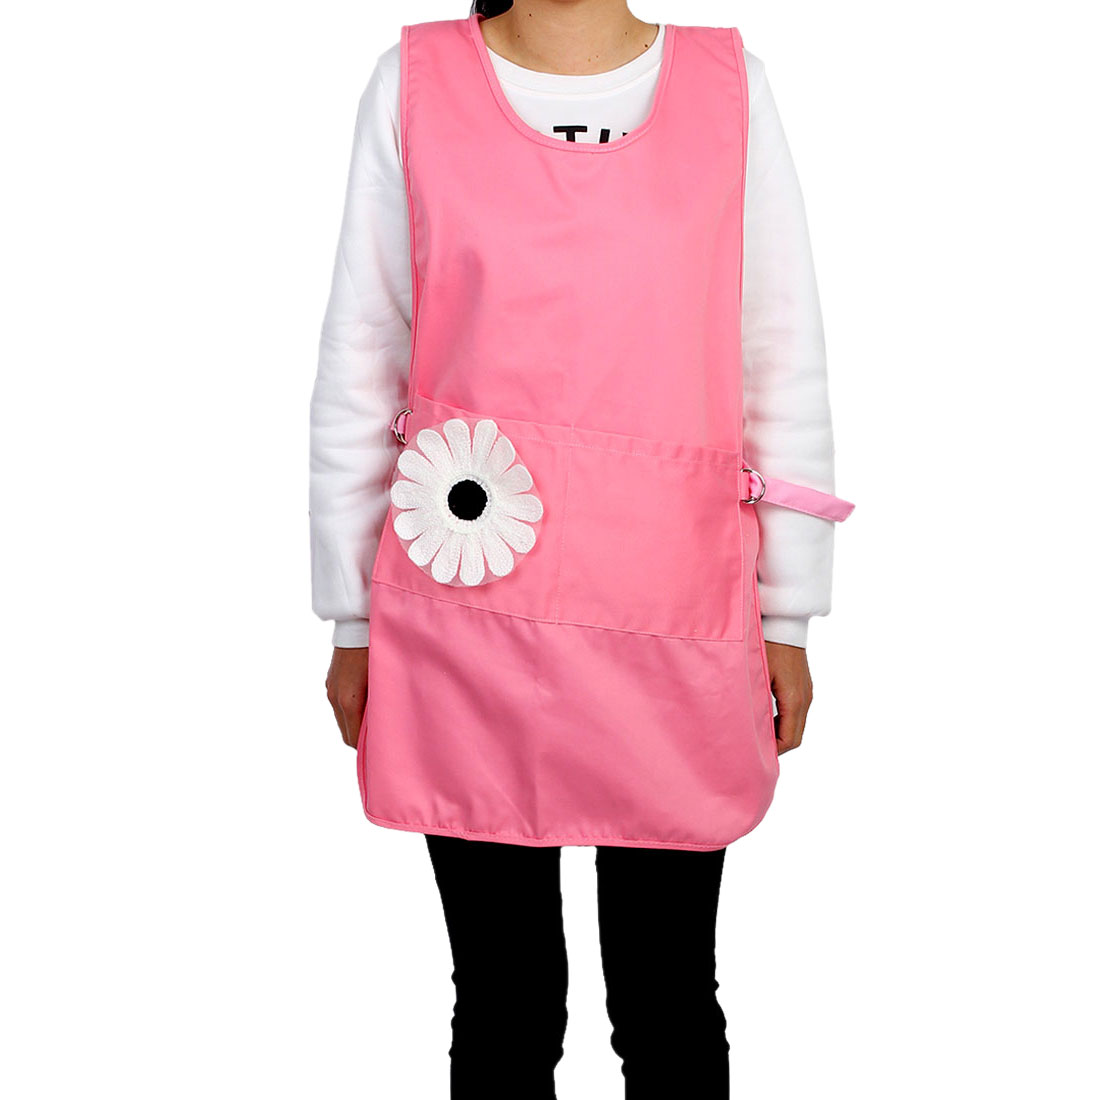 Household Kitchen Polyester Flower Decor Cooking Baking Apron Bib Dress Pink